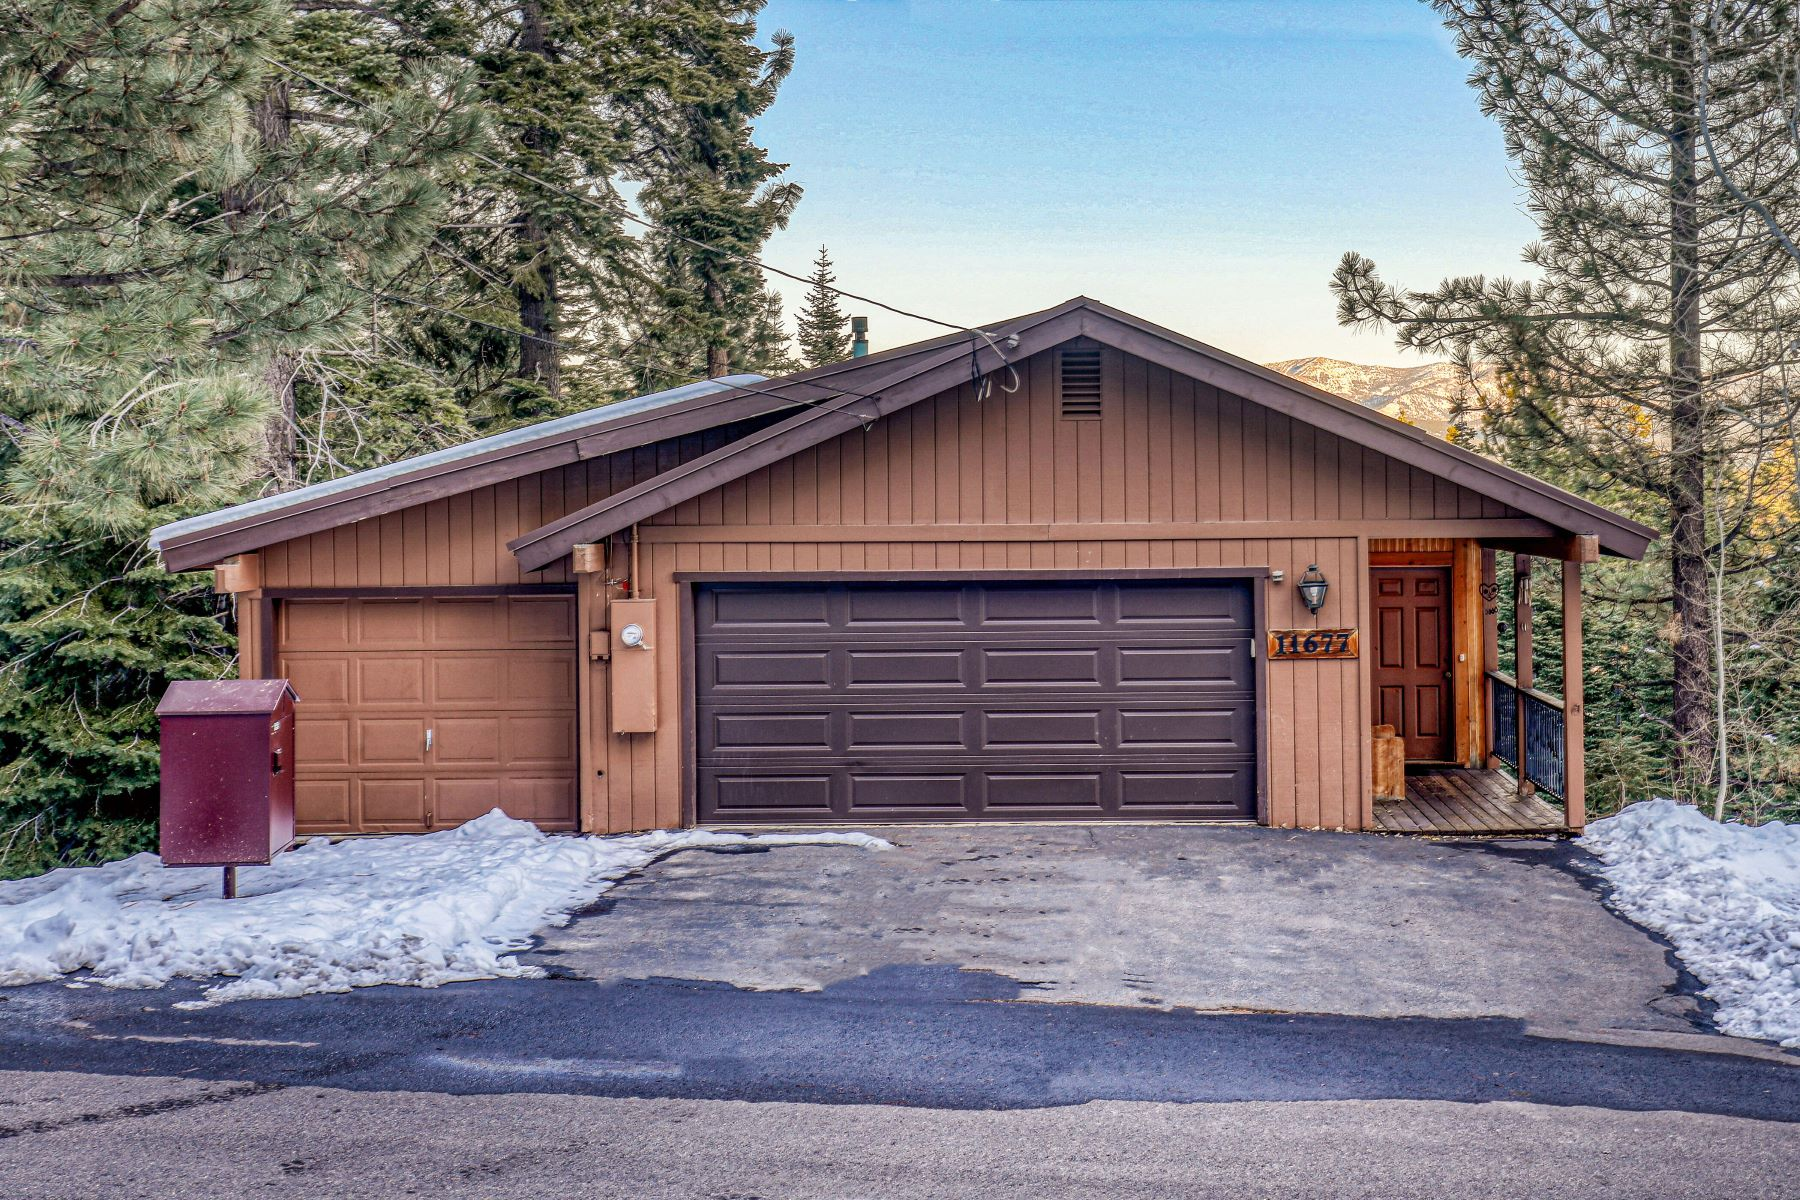 Single Family Homes for Active at 11677 Chamonix Road Truckee, California 96161 United States